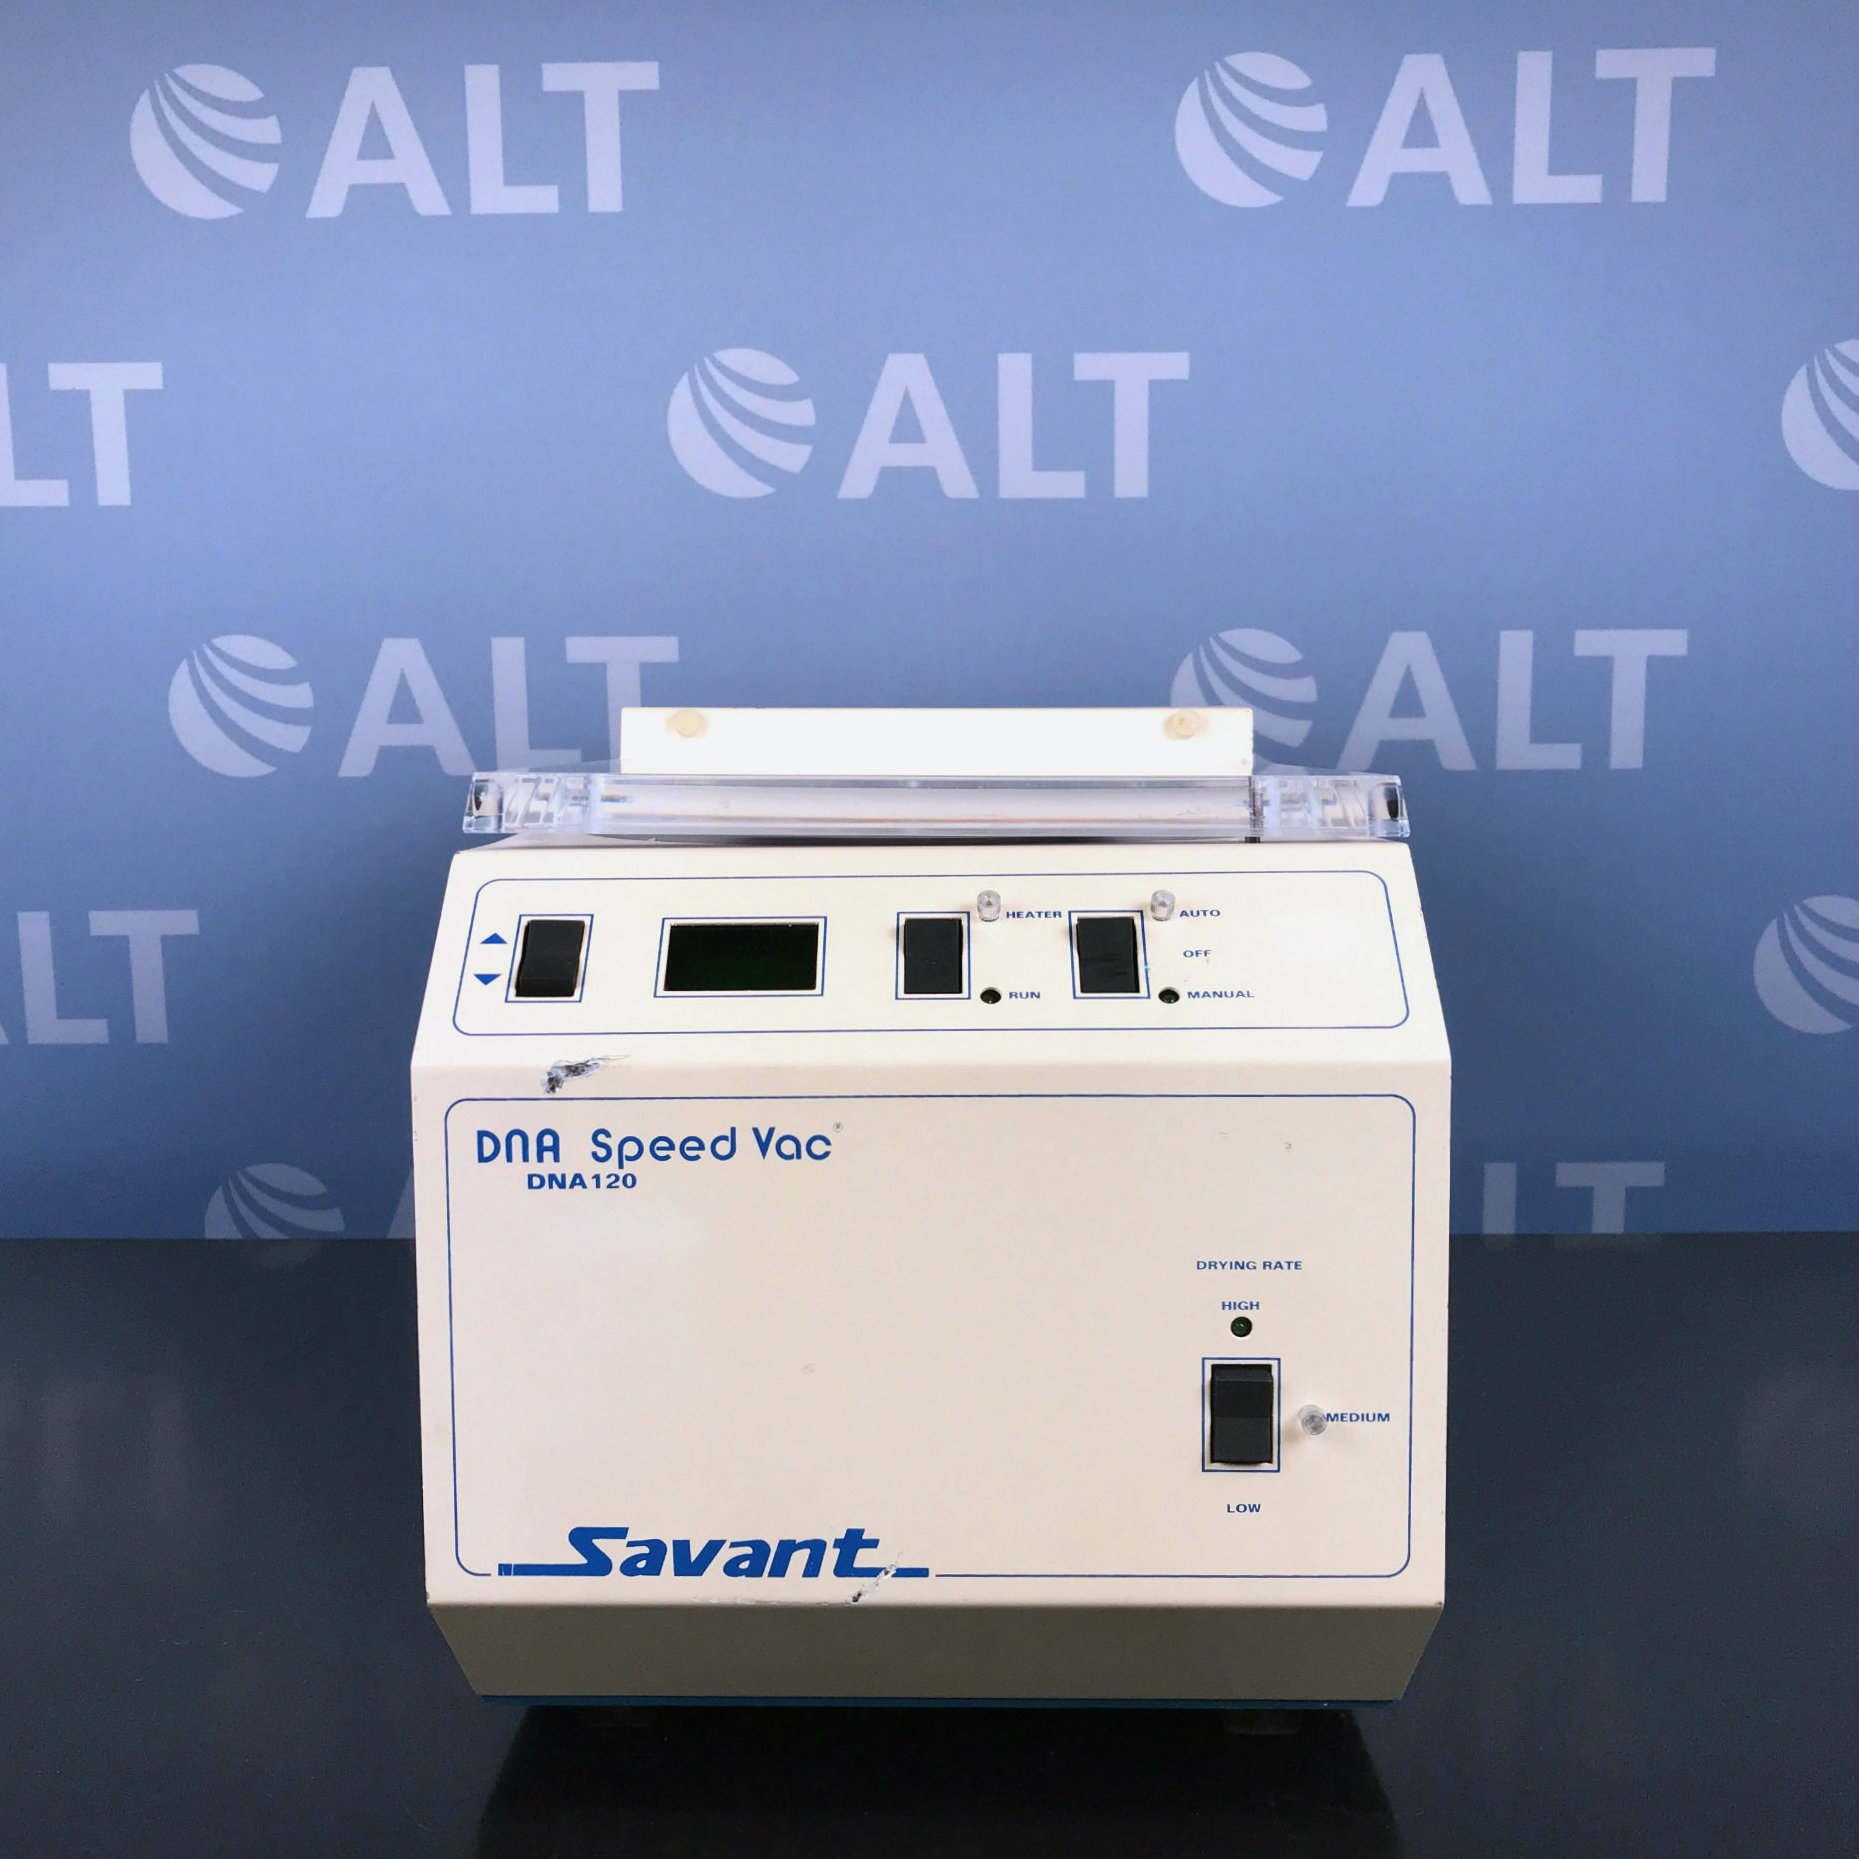 Savant DNA 120 Speed Vac Centrifuge Model DNA120-120 Image